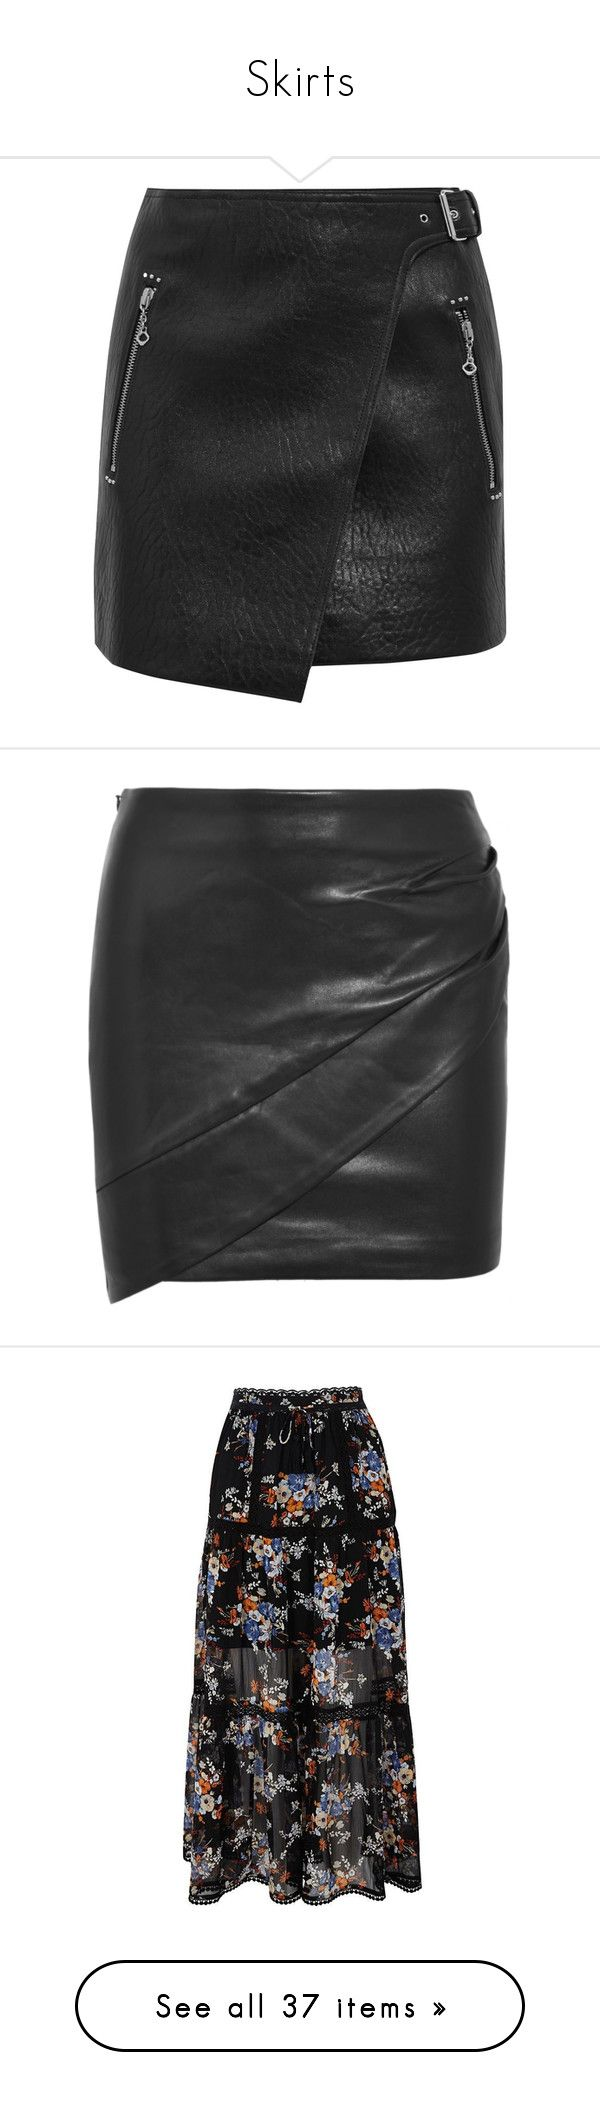 """Skirts"" by raven-couture ❤ liked on Polyvore featuring skirts, mini skirts, saias, short plaid skirt, tartan mini skirts, plaid mini skirt, wrap mini skirt, tartan plaid skirt, leather skirt and leather wrap skirt"